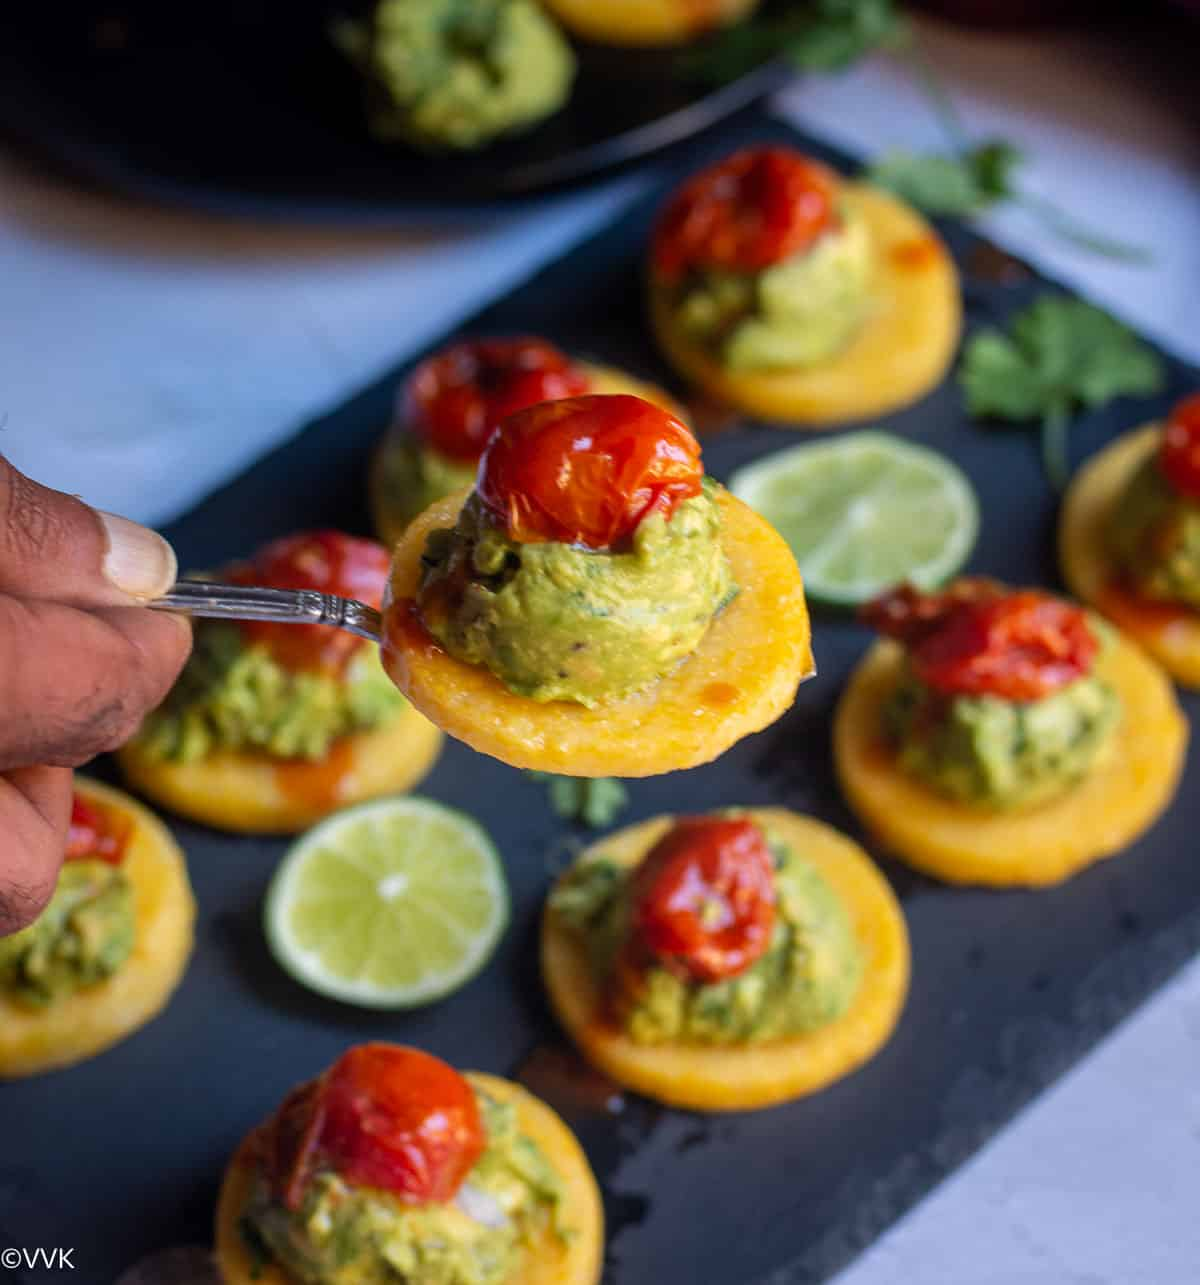 handheld closeup shot of baked polenta topped with guacamole and tomatoes